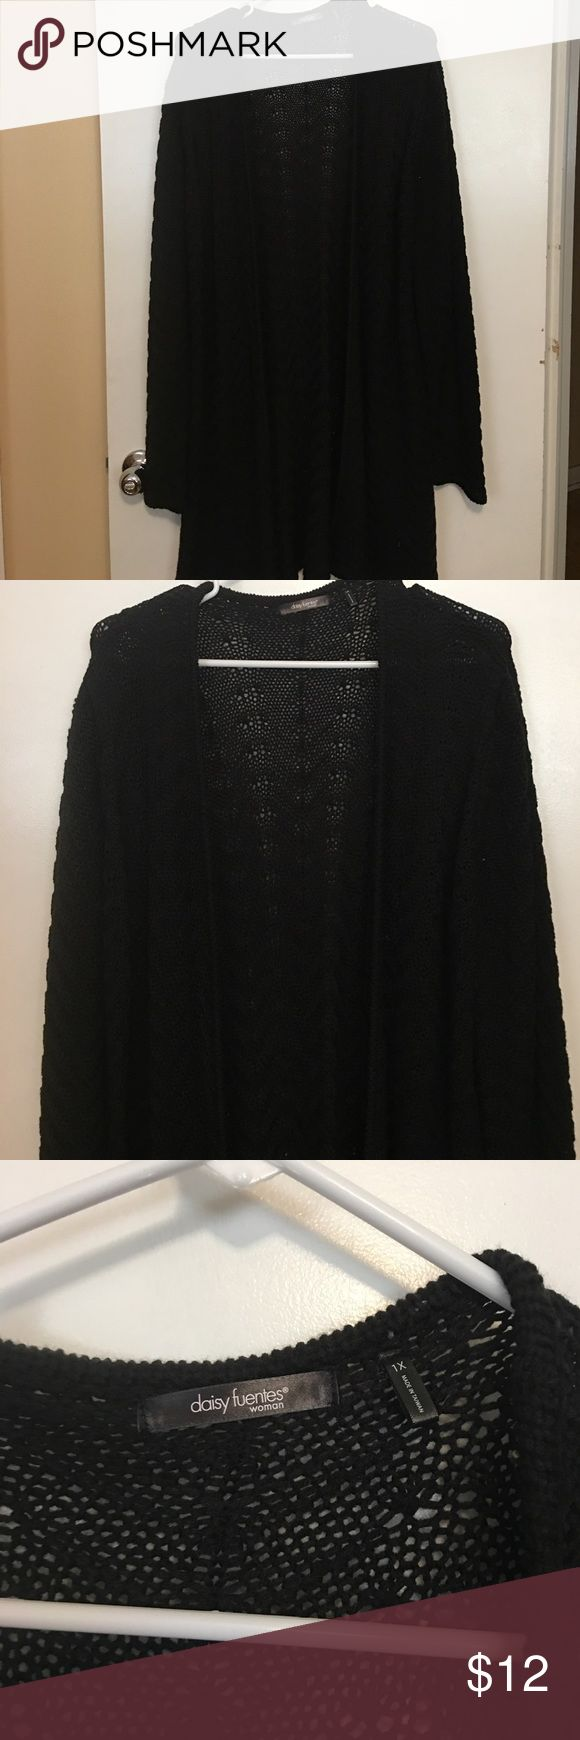 Daisy Fuentes 1x black long sweater for sale! Daisy Fuentes women's 1x sweater for sale! It is black, crochet style, long (comes down to my mid thigh and I'm 5'4) very comfortable (I wore with skinny jeans to cover my butt) and goes with everything! Purchased about a year ago, wore 1-2x and has been sitting in my closet ever sense.  If interested make an offer, NO TRADES PLEASE :) Daisy Fuentes Sweaters